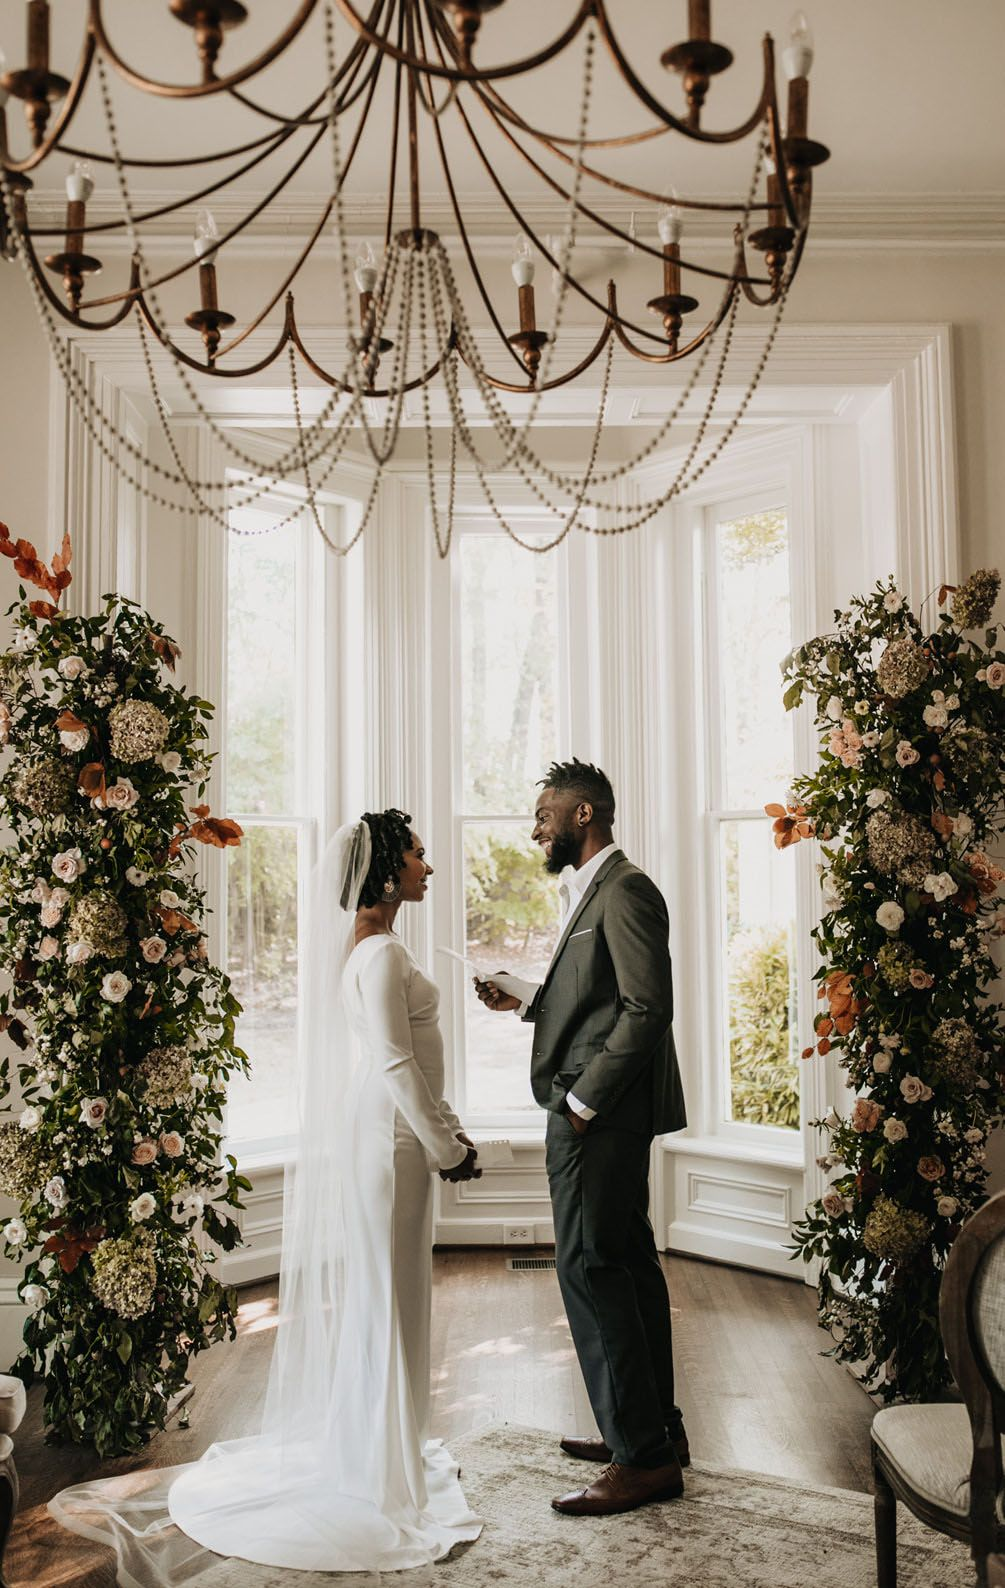 Classy Home Wedding Inspiration Turned Real Life Vow Renewal In 2020 Home Wedding Inspiration Wedding Inspiration Home Wedding